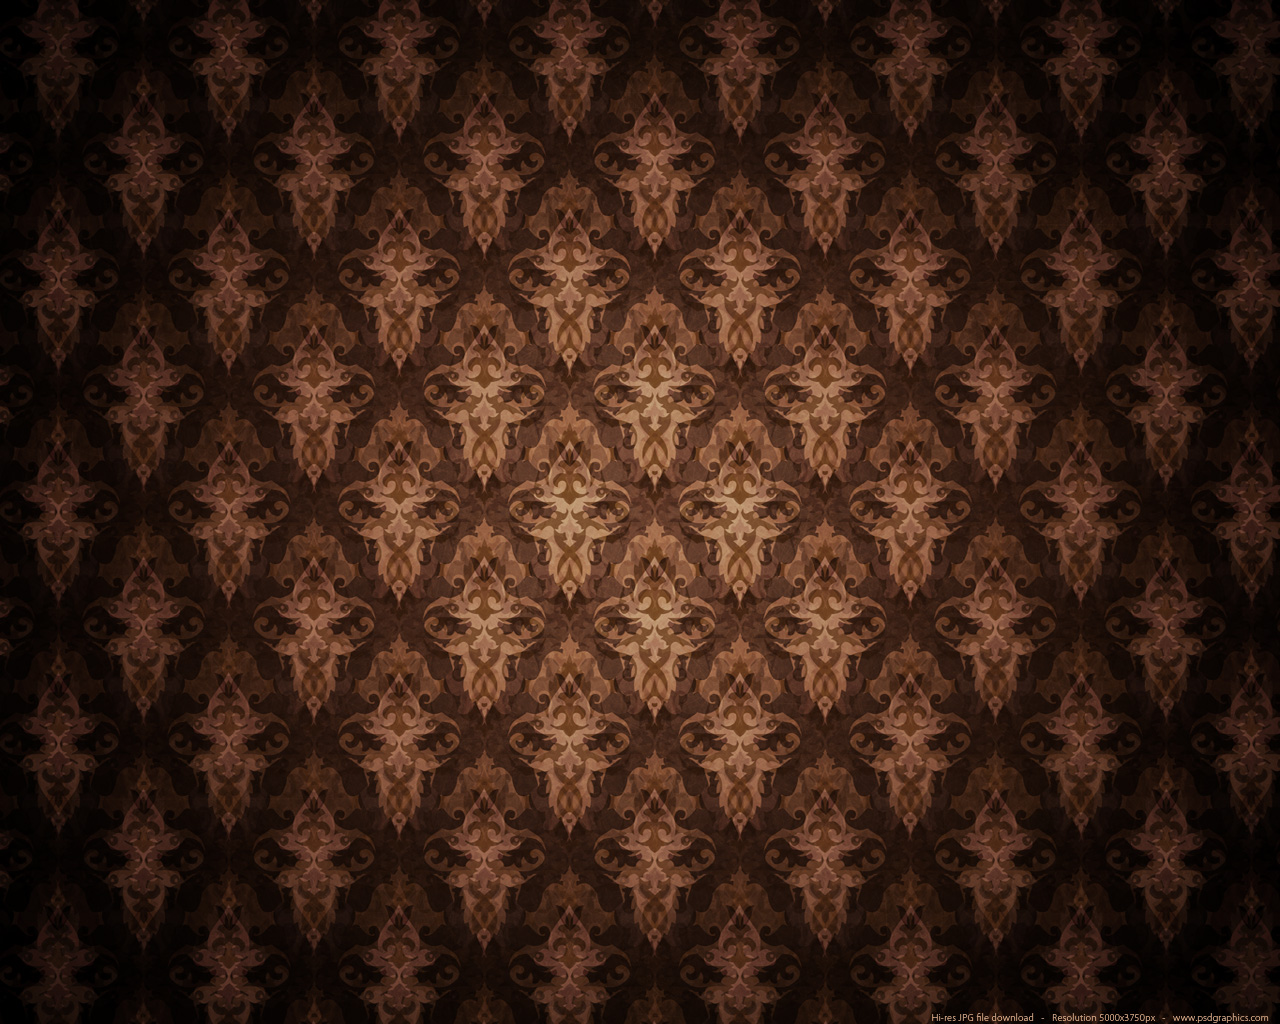 Medium size preview 1280x1024px brown antique background